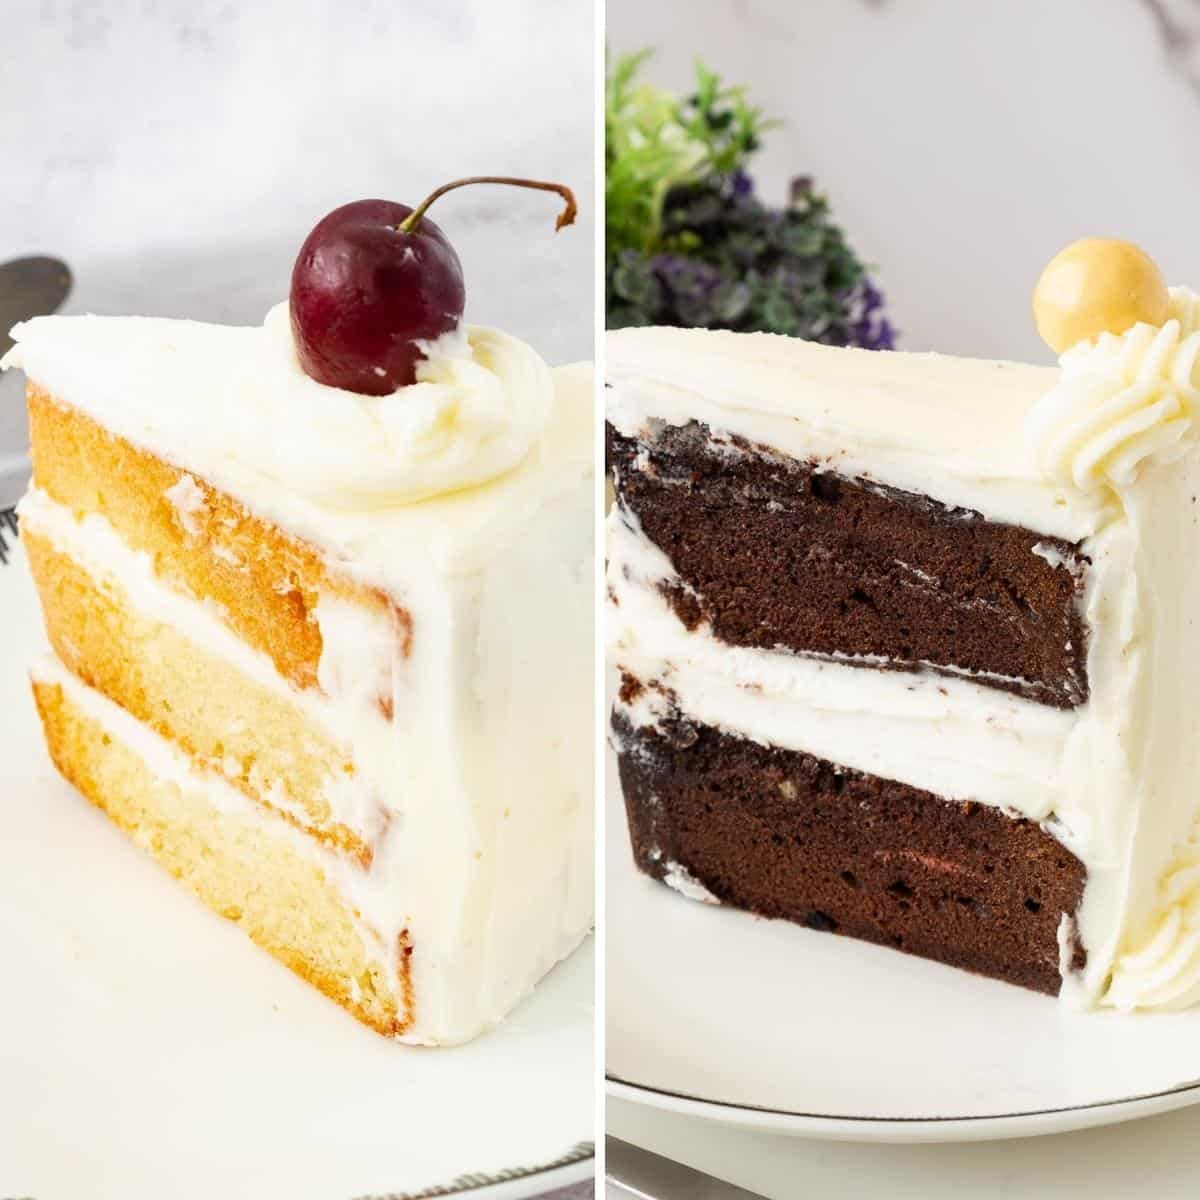 Vanilla and chocolate cake sliced on a plate.